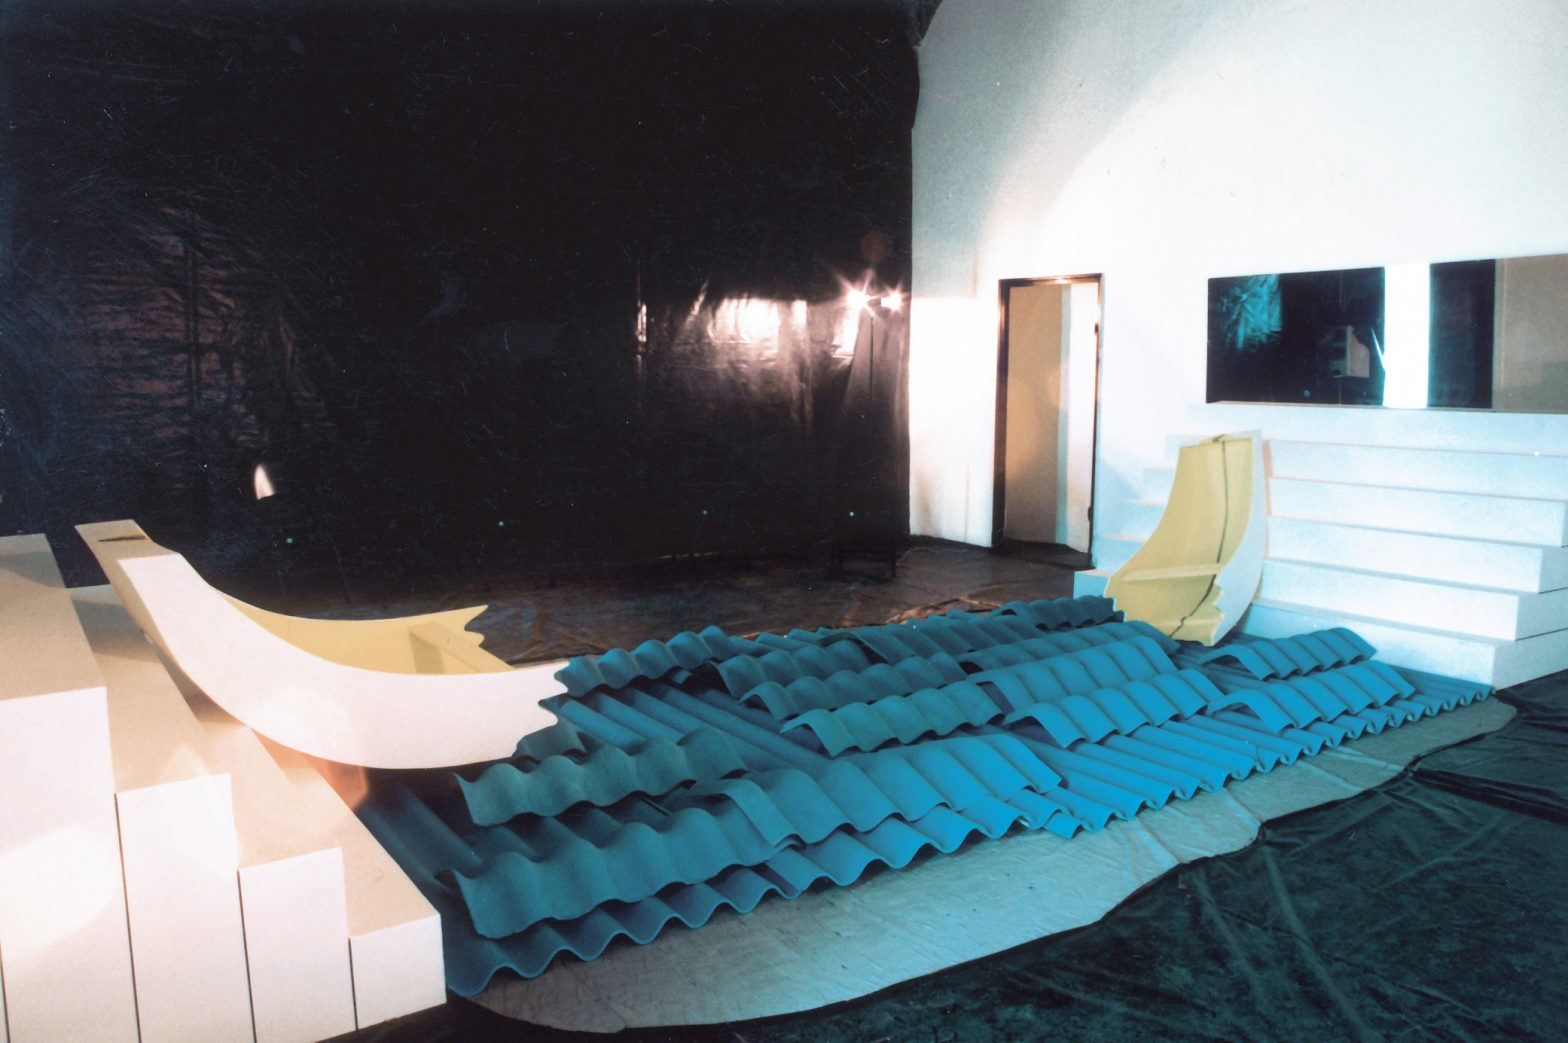 Floor and one wall of a white room covered with black plastic foil. Blue corrugated panels stretch between 2 podests in the center. Each half of a shipwreck leans against the podests.